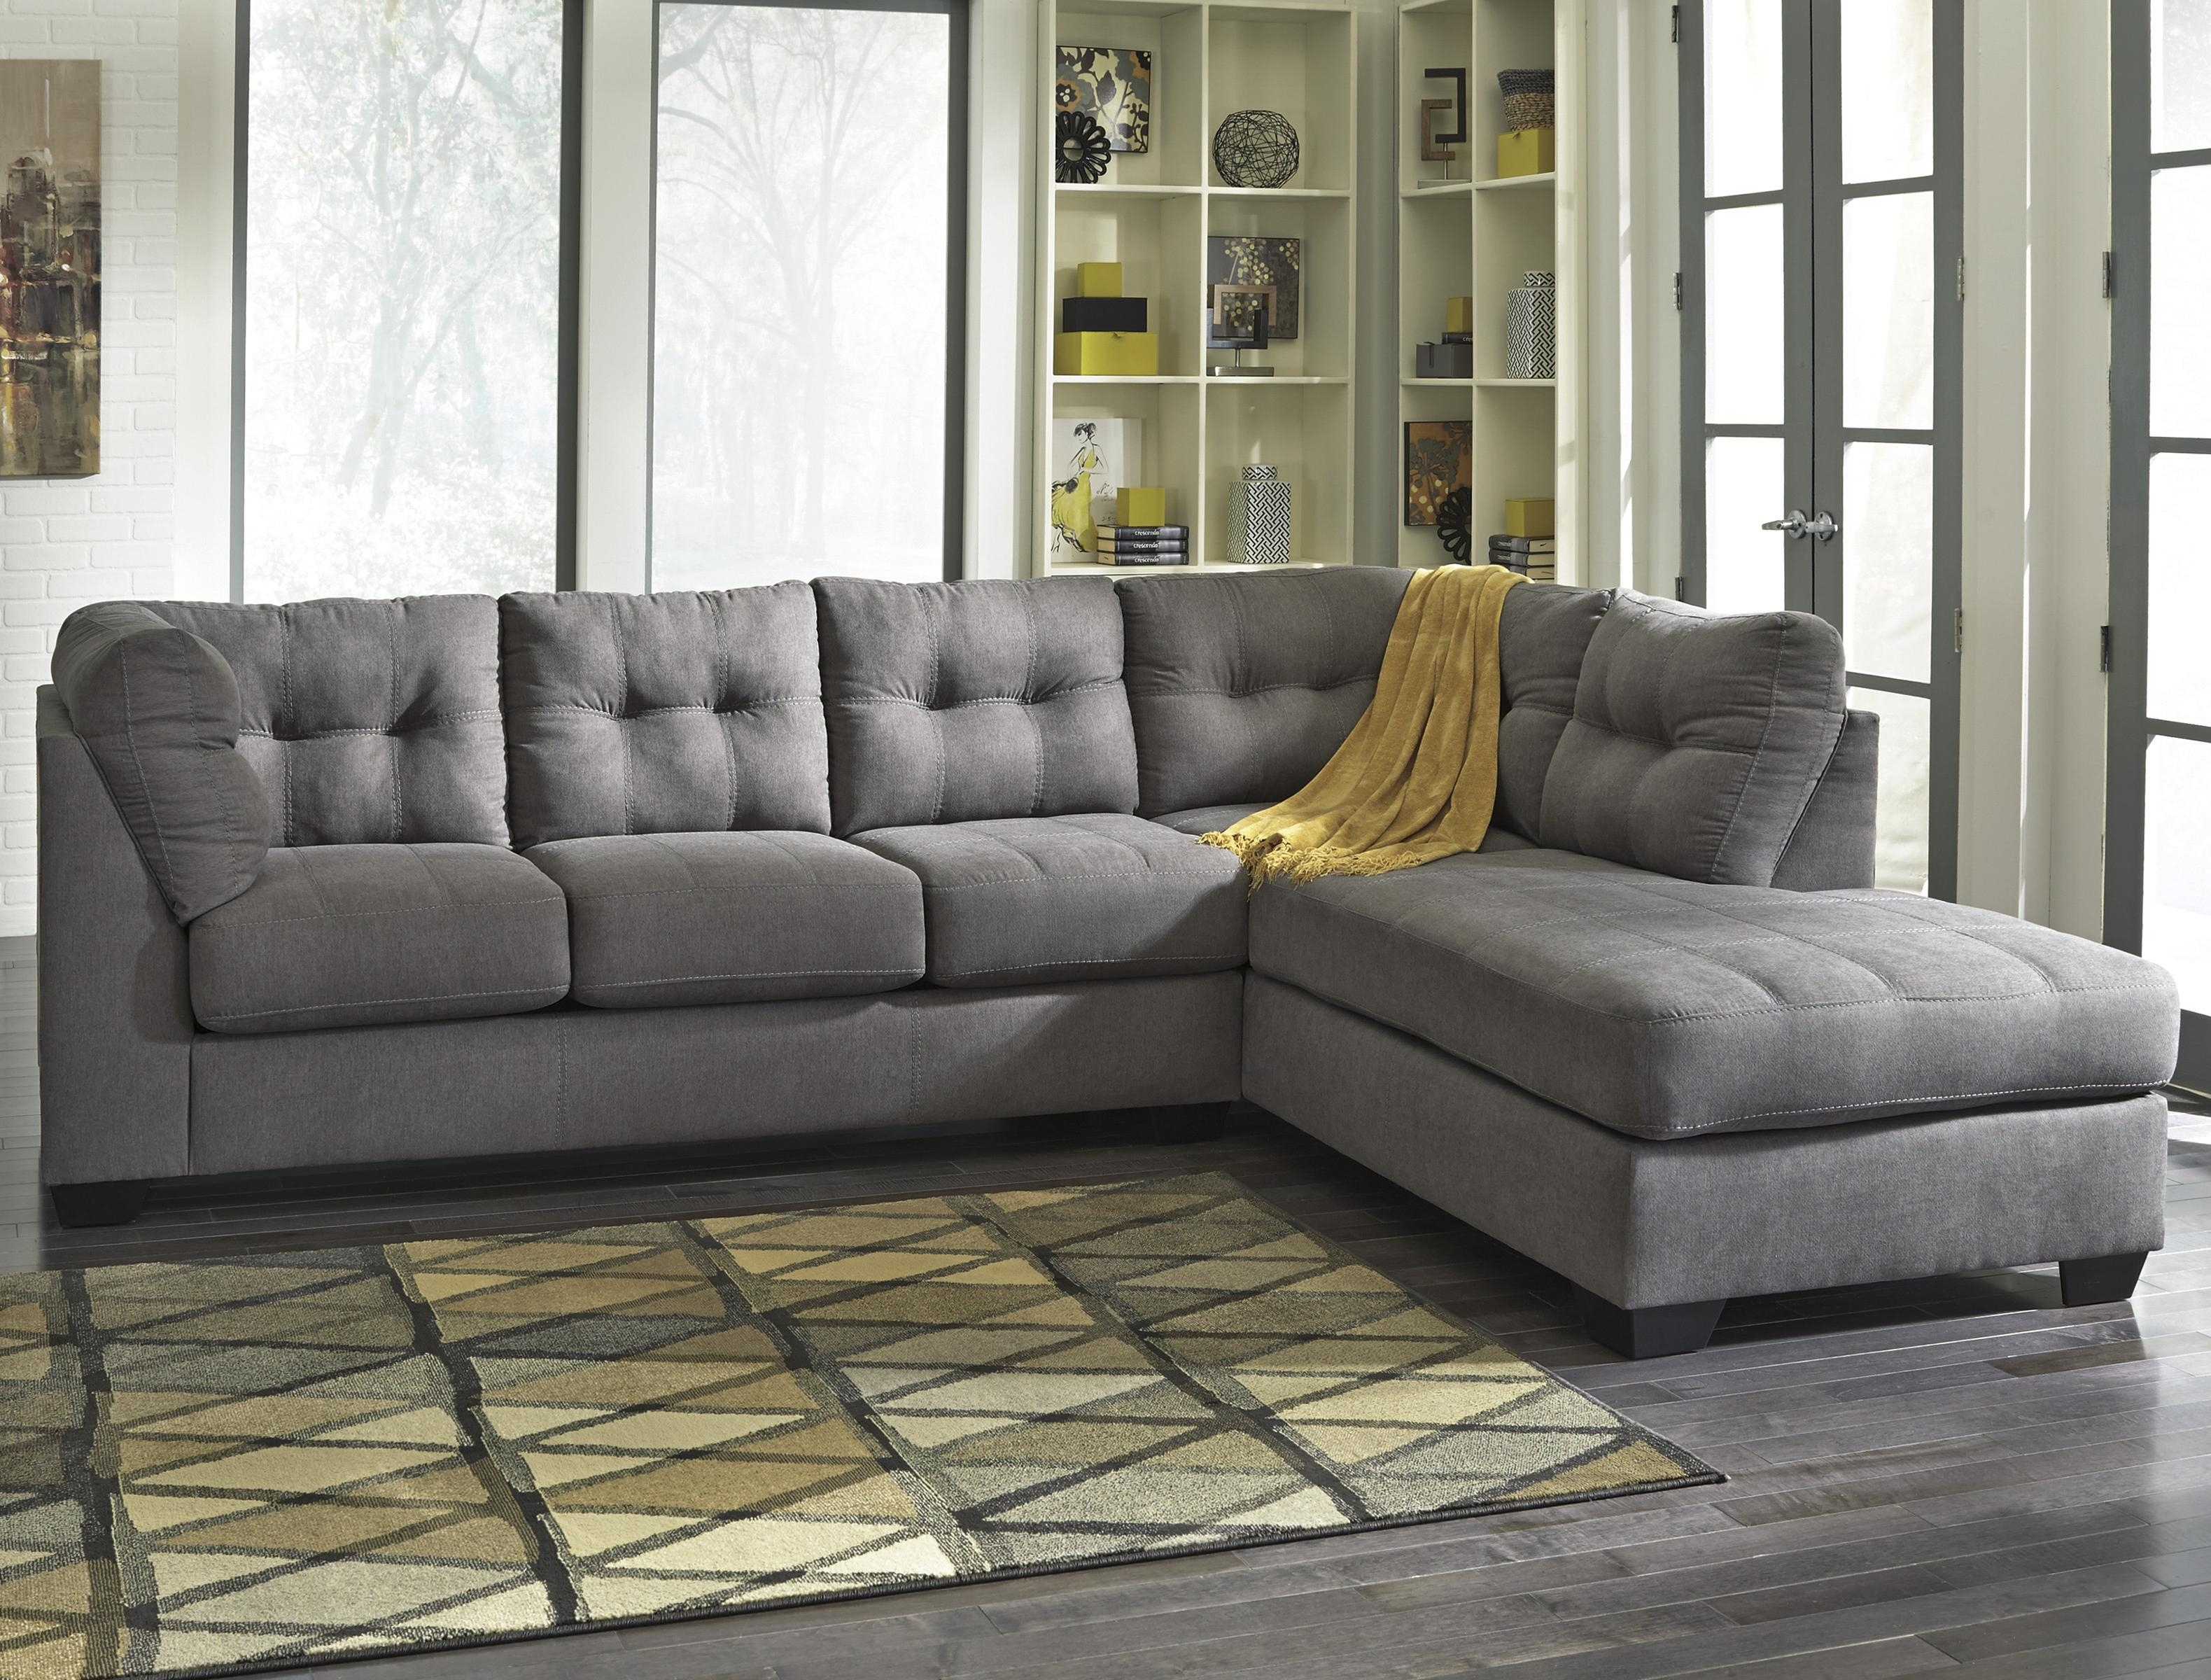 Outstanding Sectional Sofa Denver 97 For Used Leather Sectional Sofa inside Denver Sectional Sofas (Image 7 of 10)